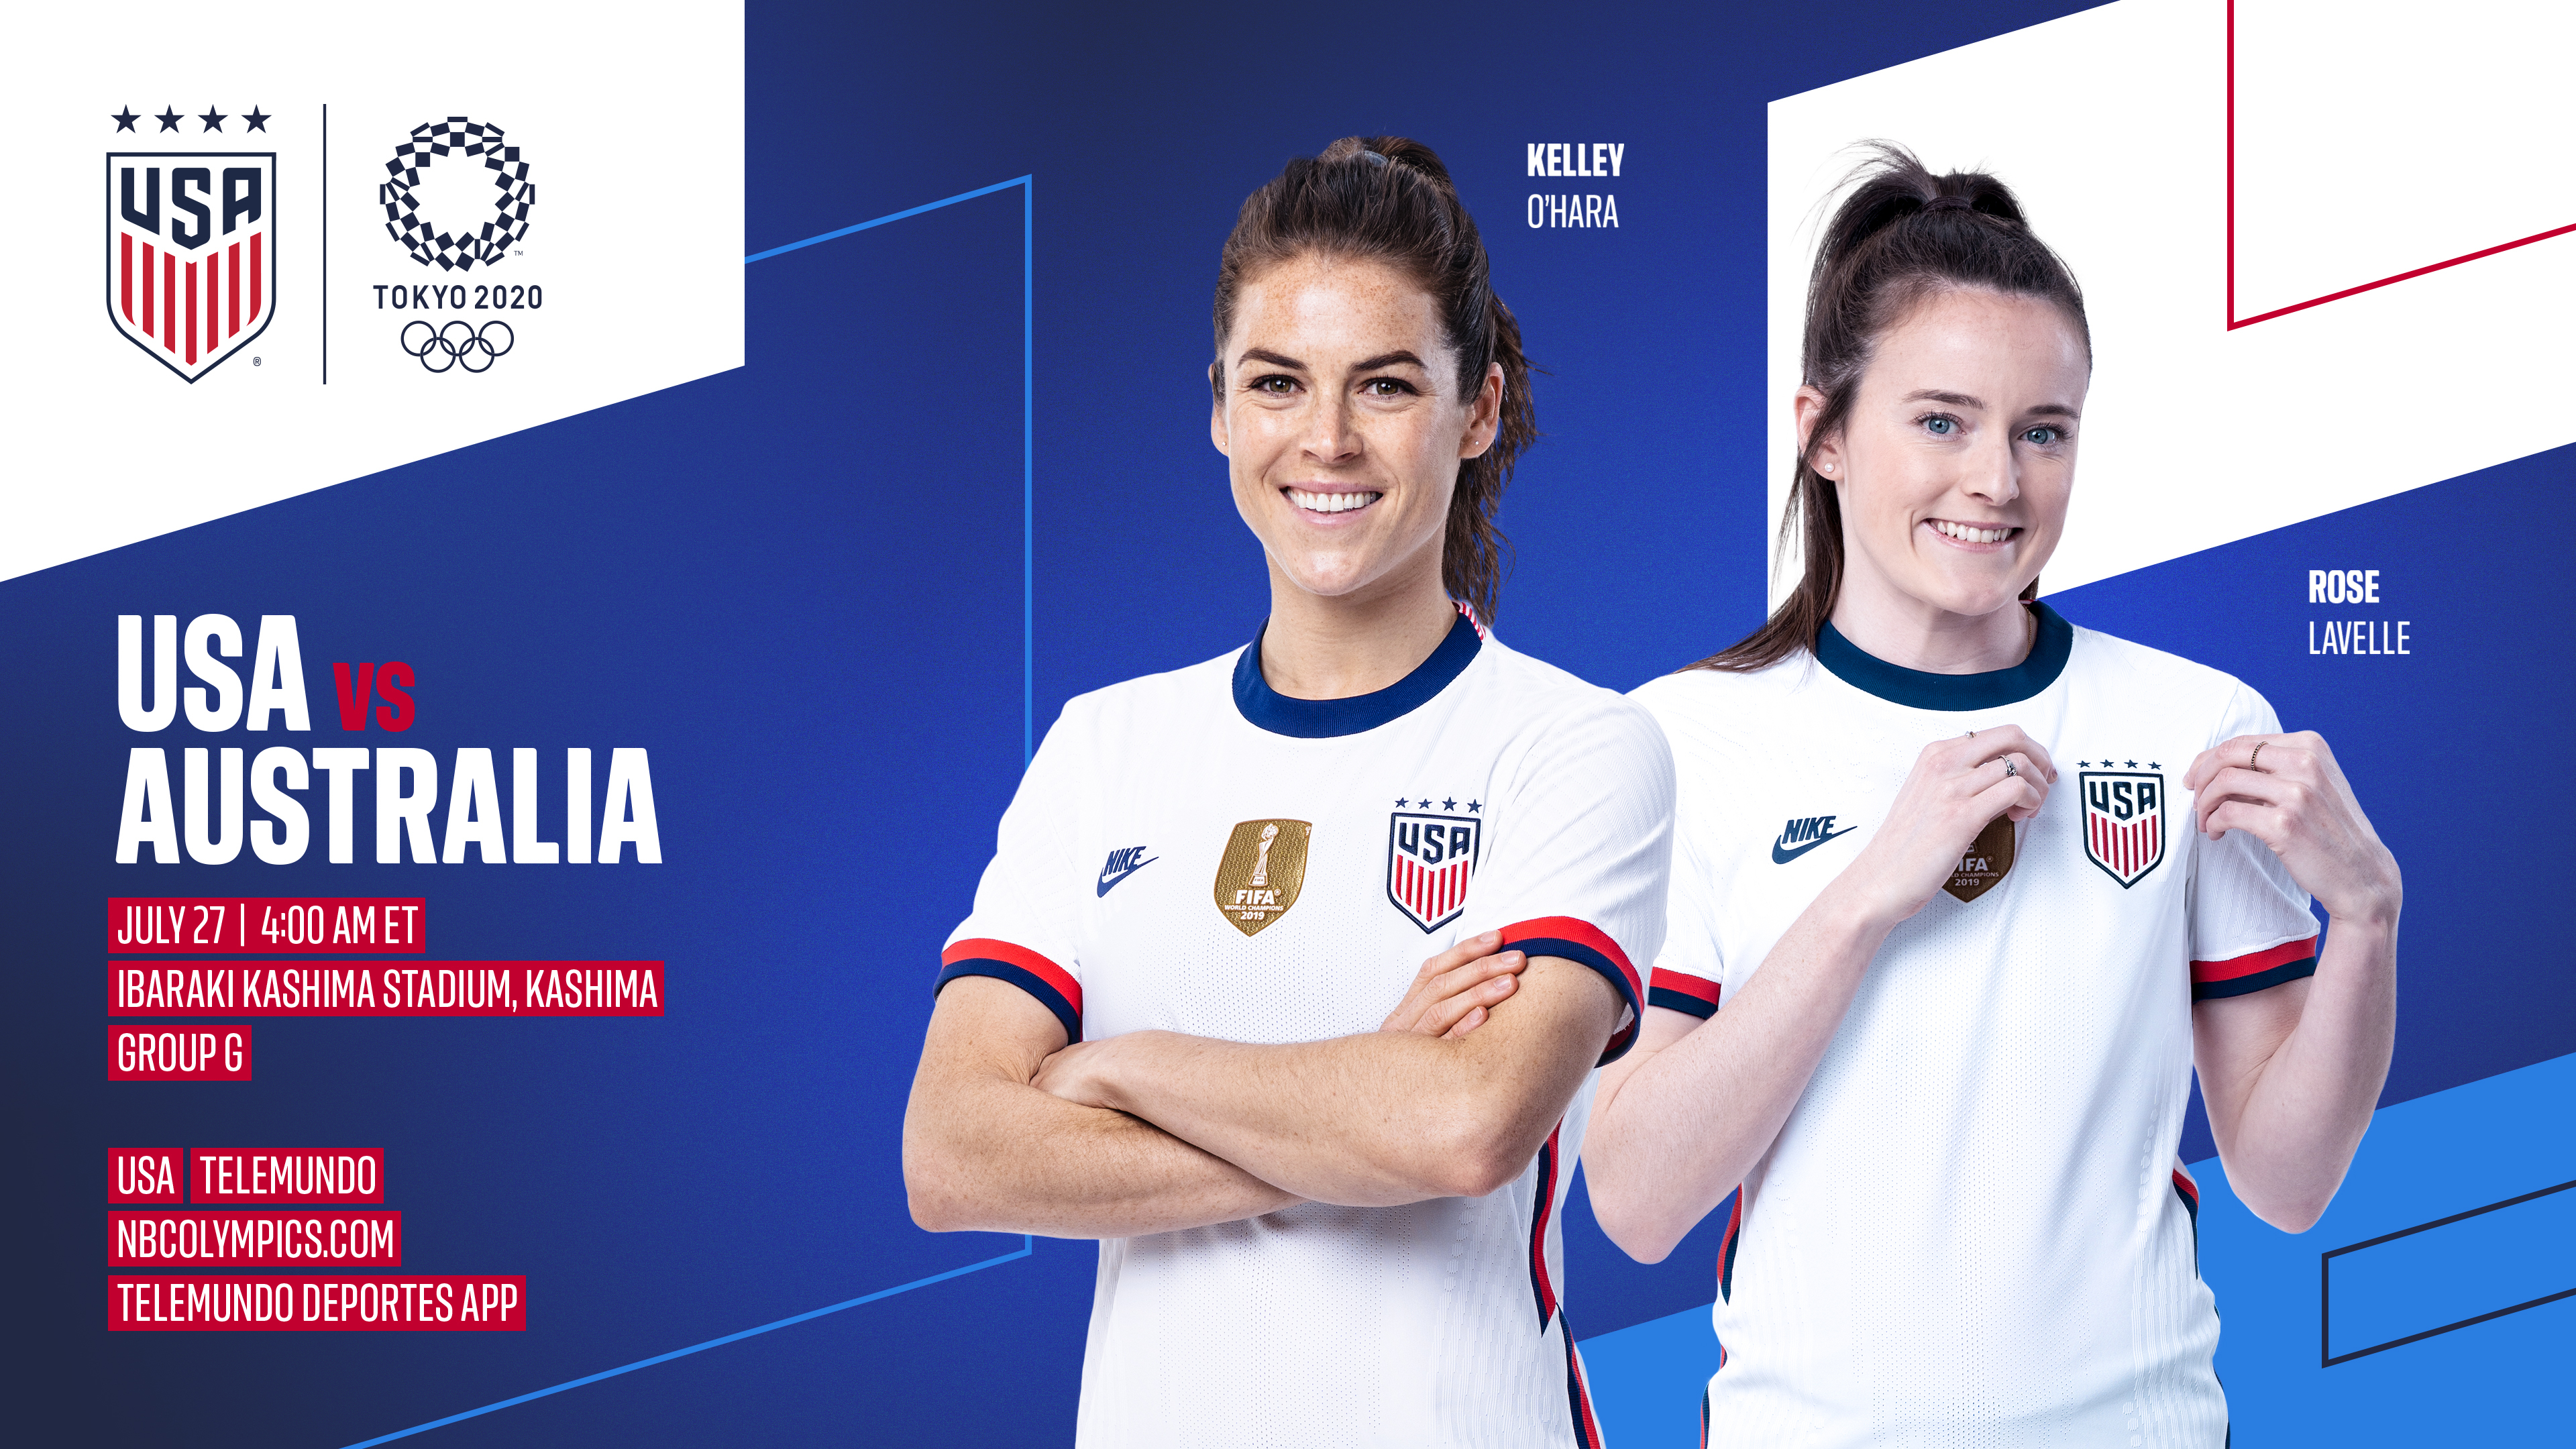 2020 Tokyo Olympics: USA vs. Australia - Preview, Schedule, TV Channels & Start Time